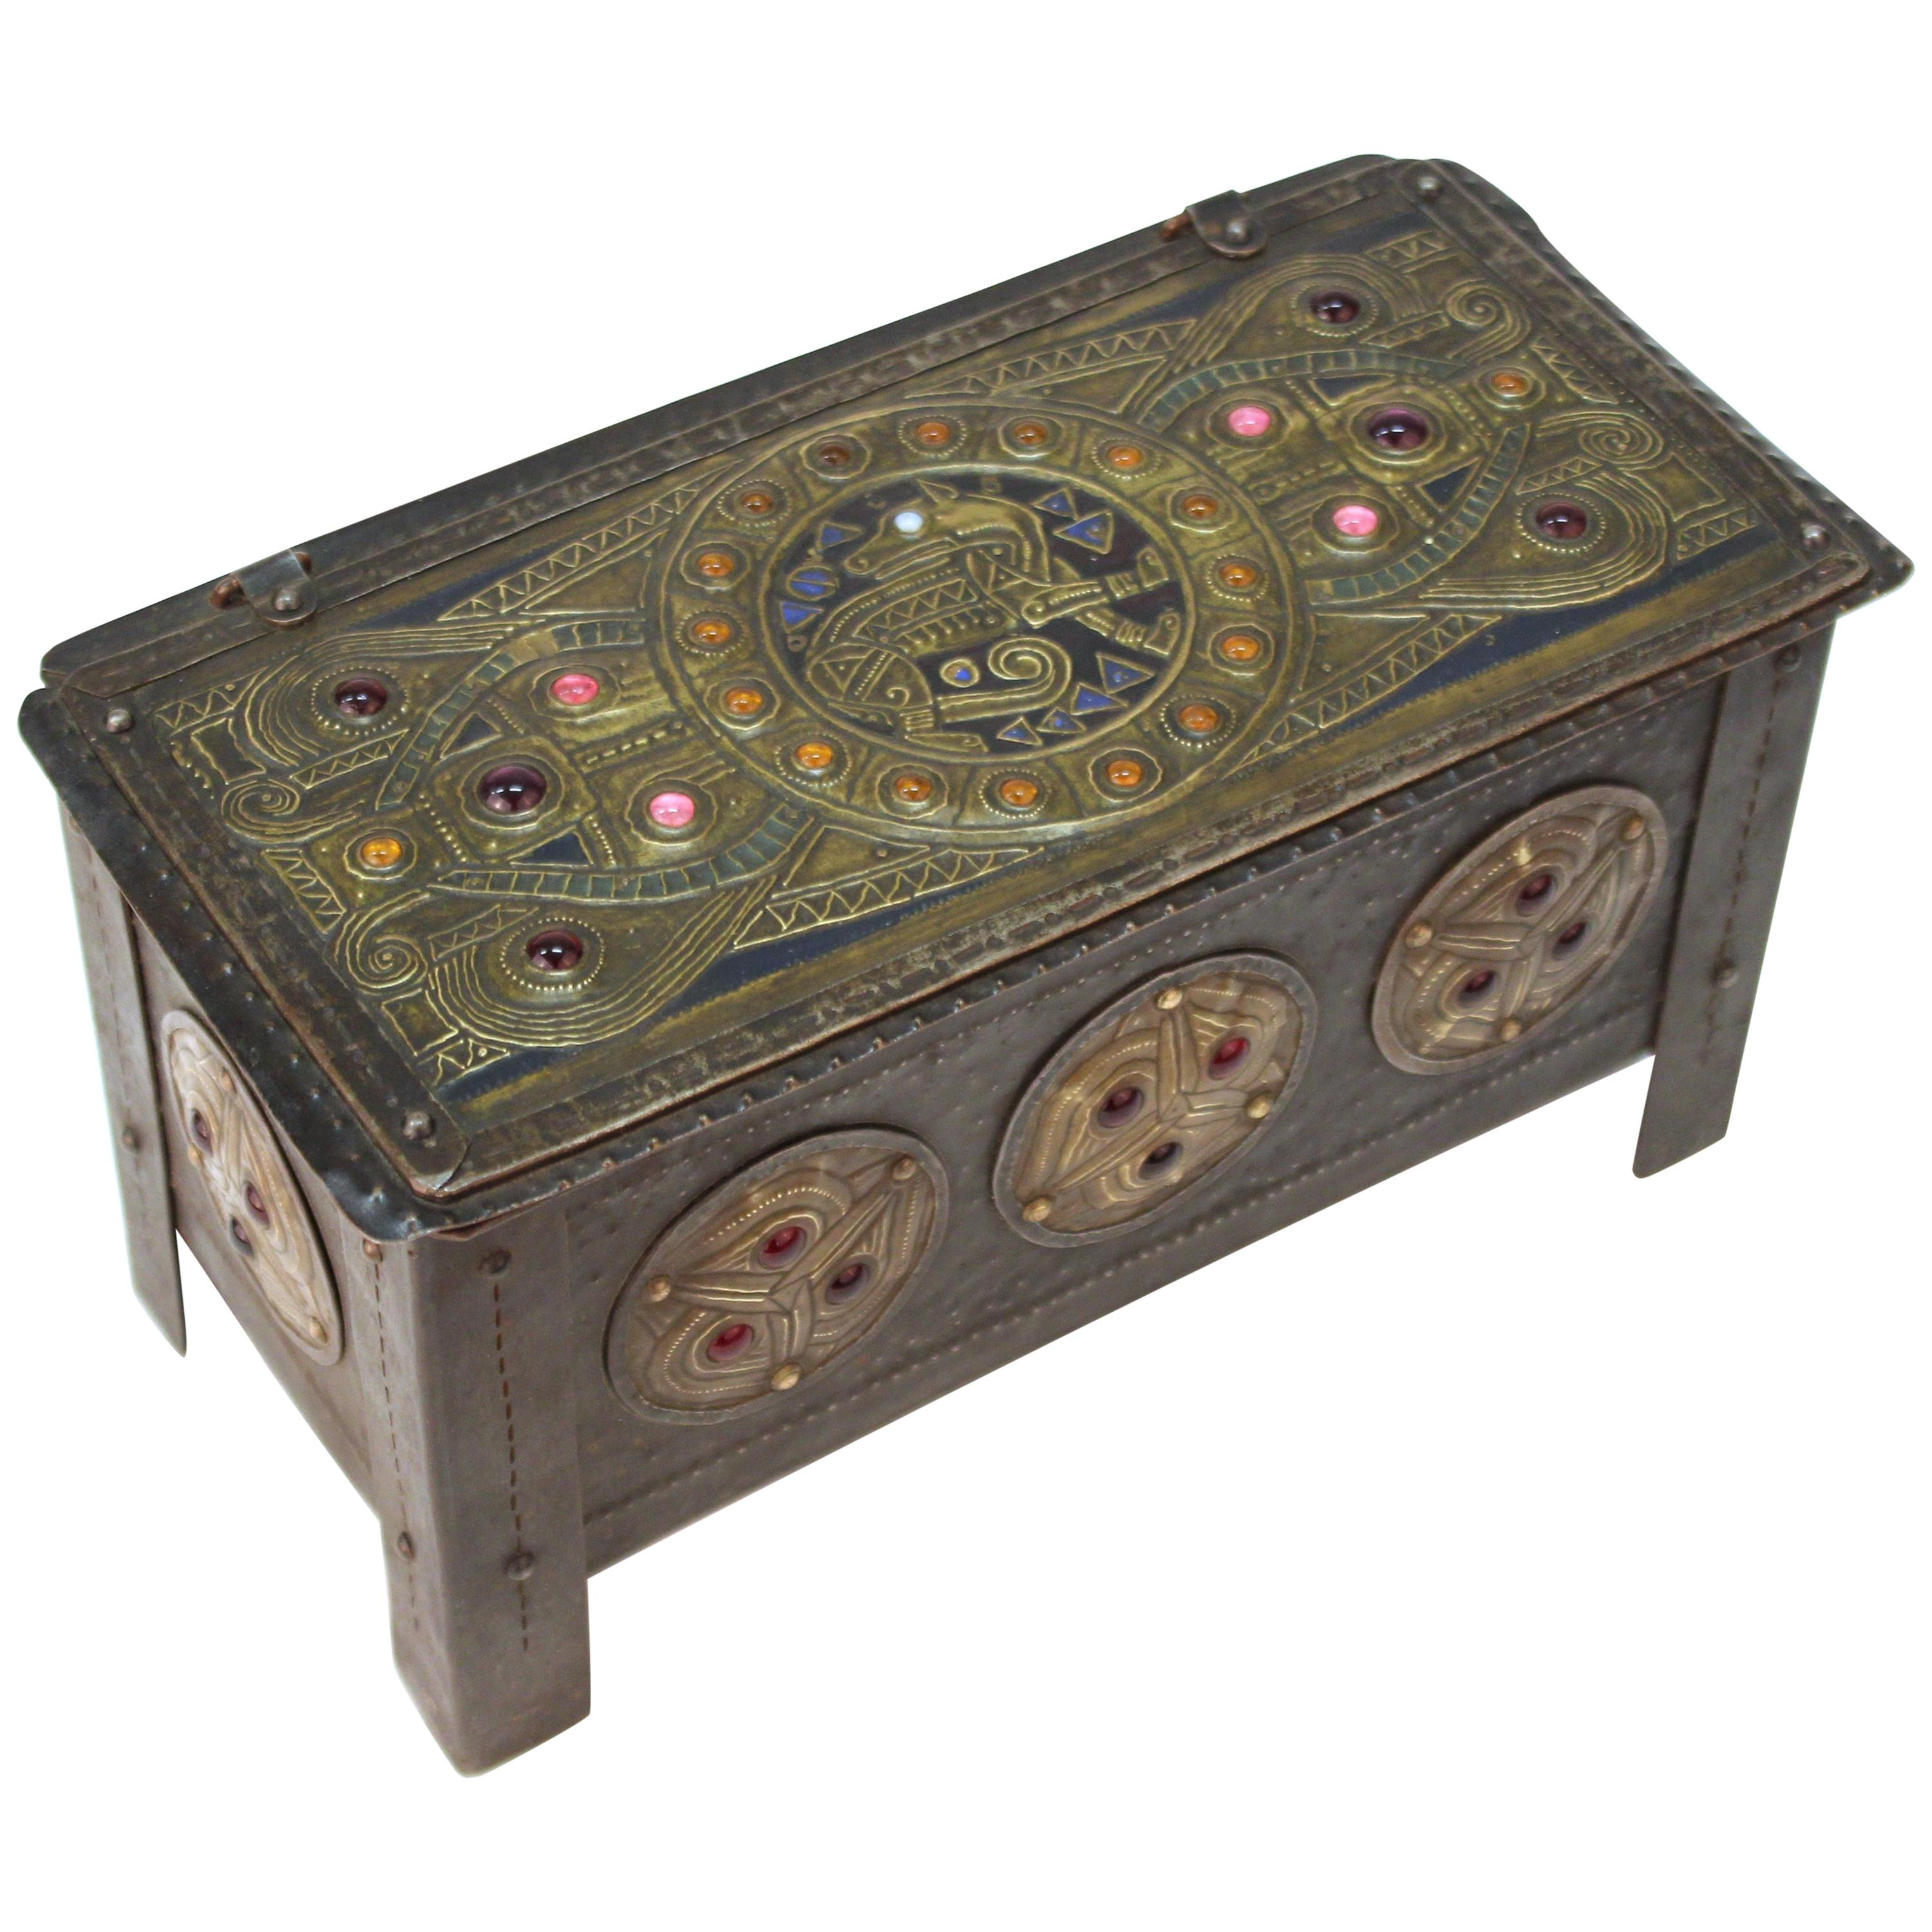 Alfred Daguet French Art Nouveau Jeweled Metal Repousse Box